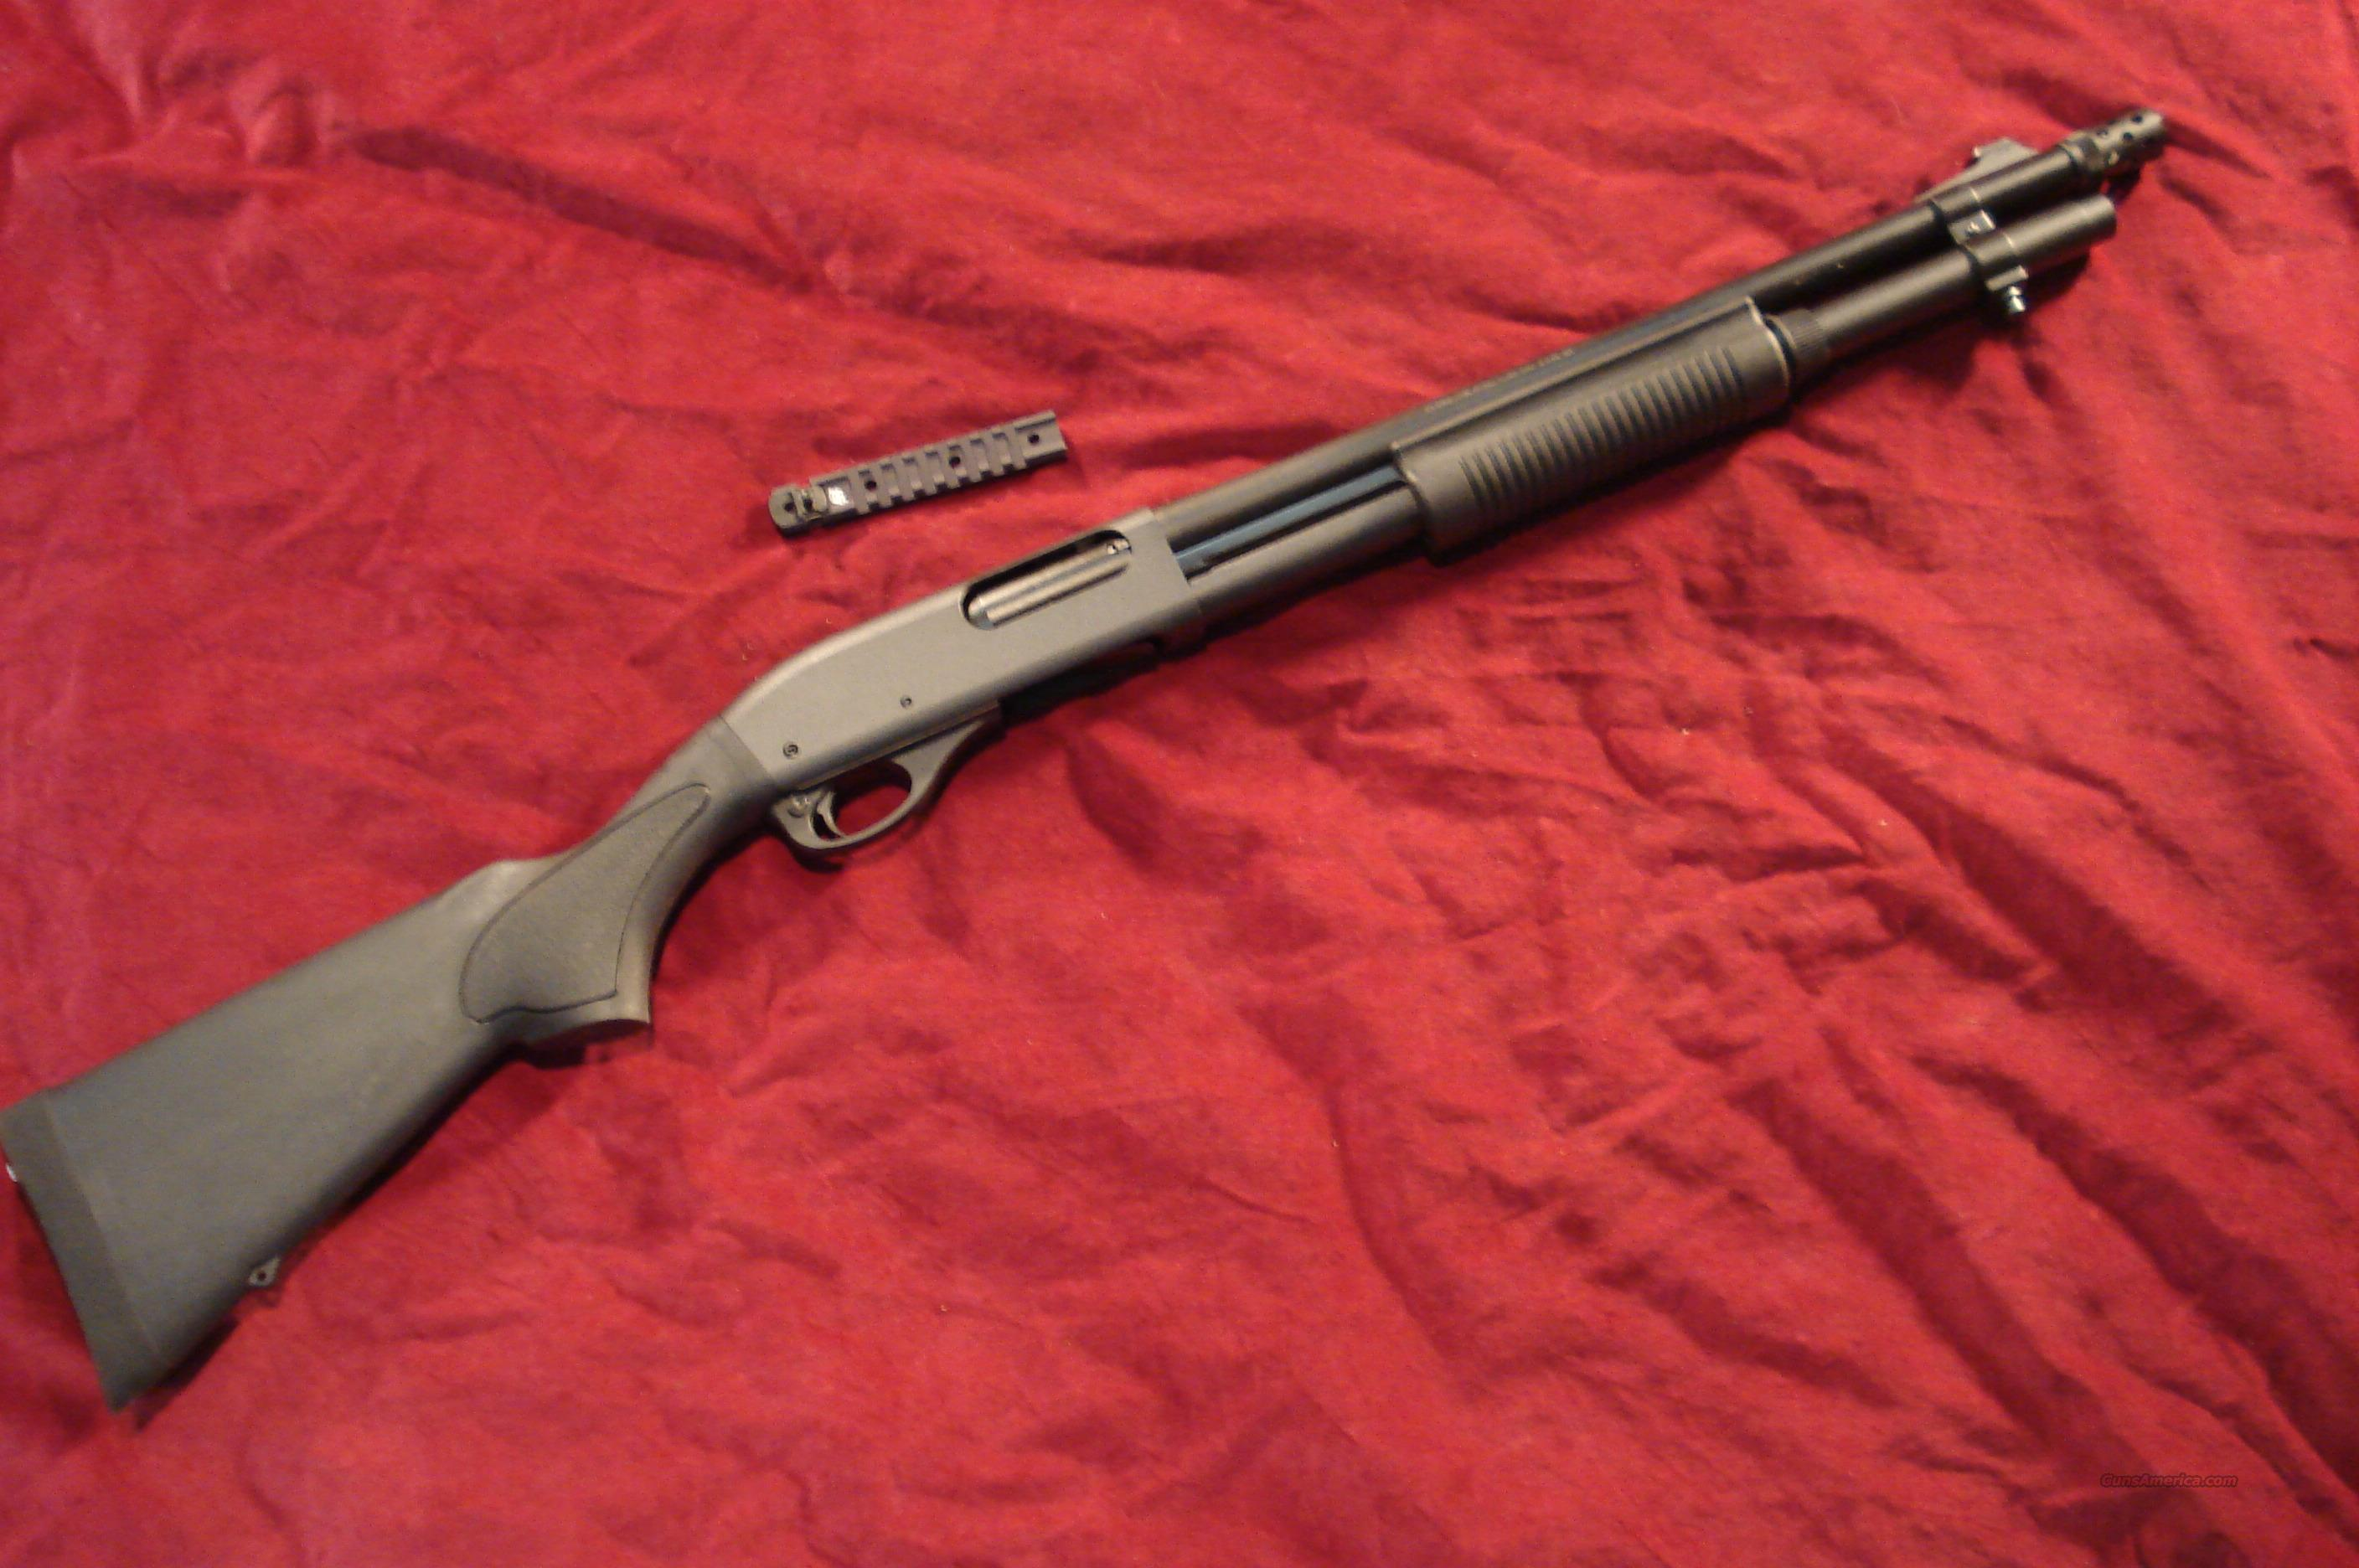 REMINGTON 870 TACTICAL 12G MAGNUM XS GHOST RING SIGHT NEW   Guns > Shotguns > Remington Shotguns  > Pump > Tactical